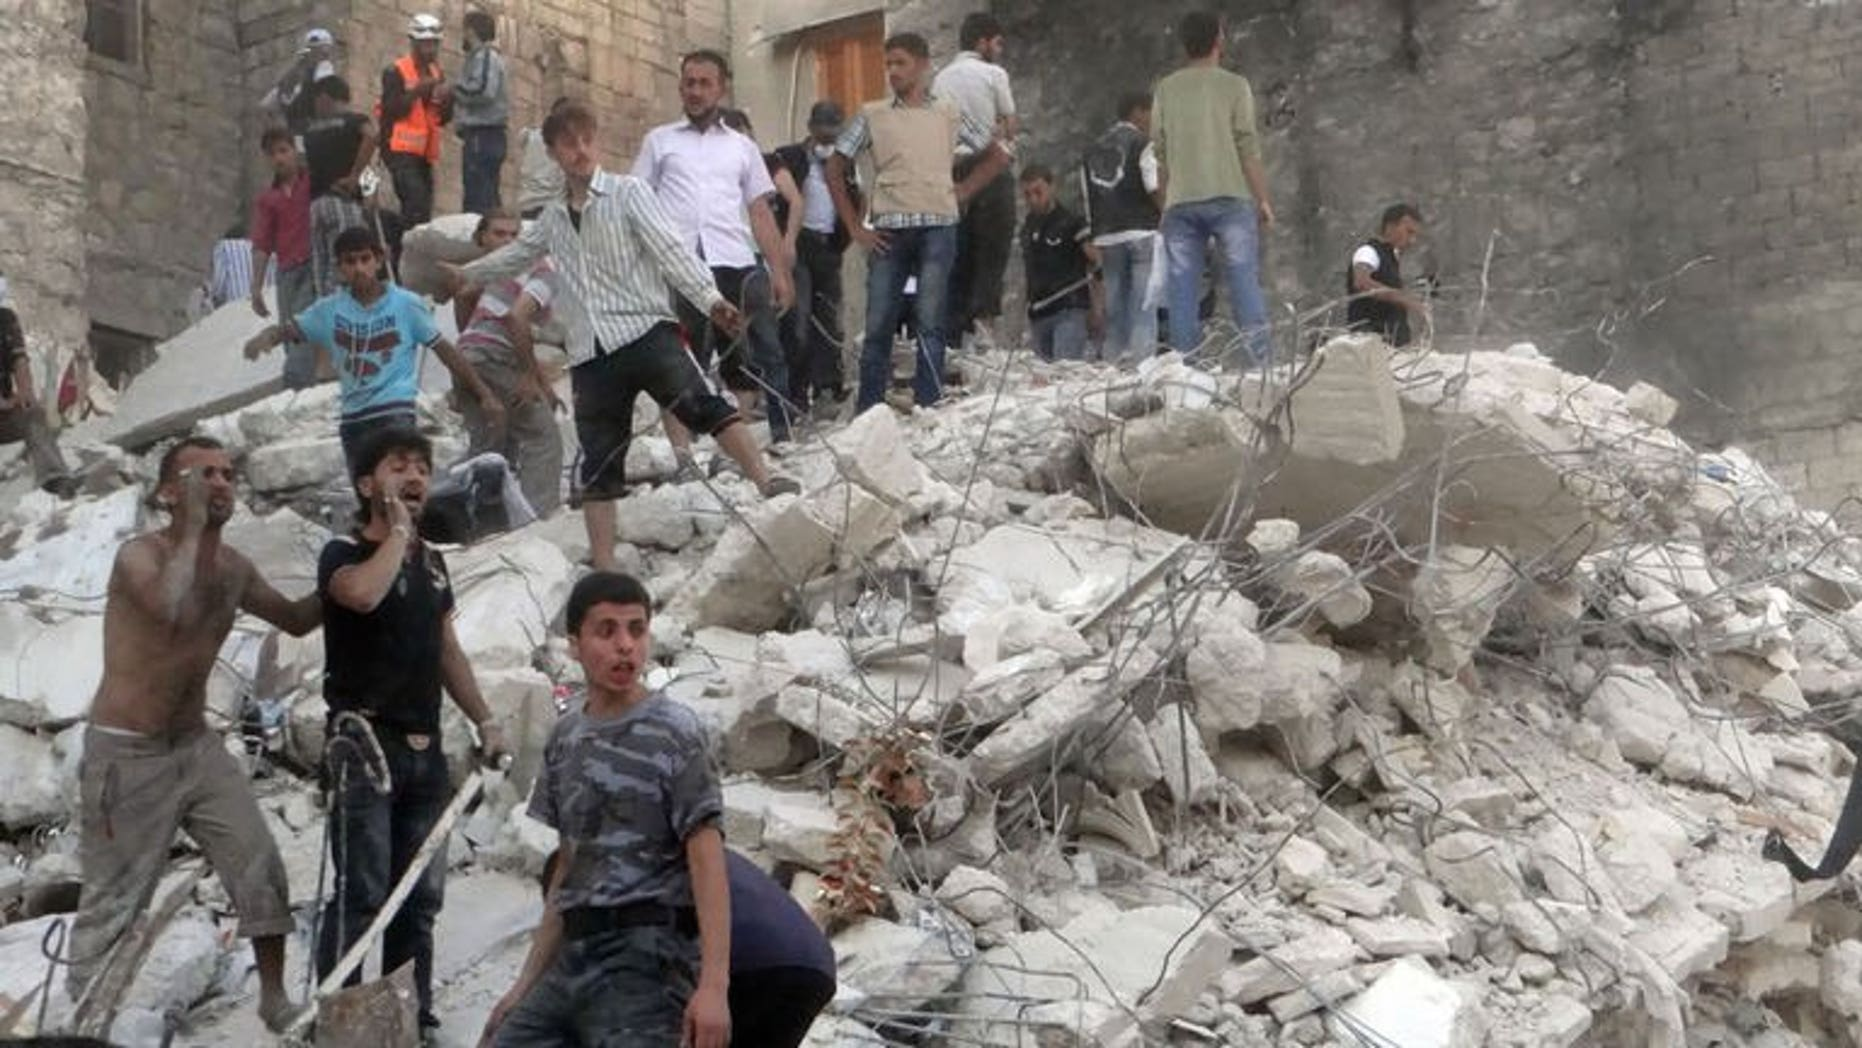 """Men stand on debris from a building which collapsed after it was allegedly bombed on August 16, 2013 in Aleppo. Syria's President Bashar al-Assad said on Sunday he is determined to """"eradicate terrorism"""" which he blames for the conflict raging in his country, according to state news agency SANA."""